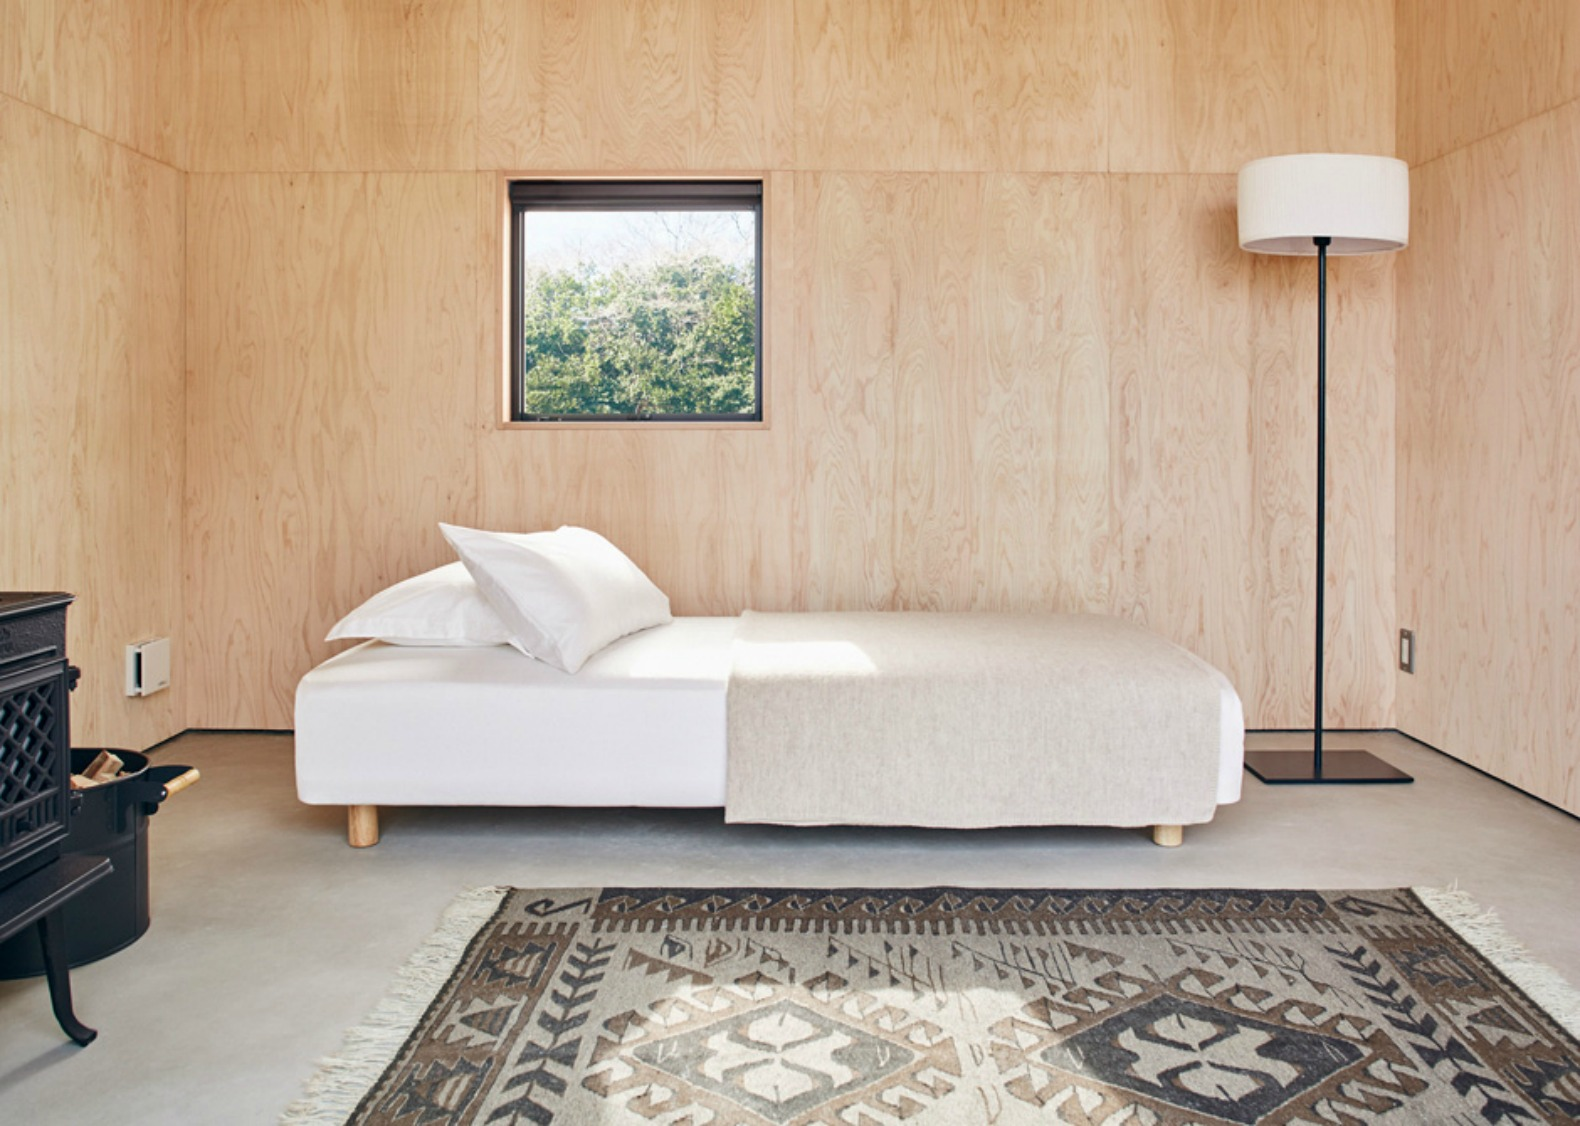 MUJI to sell eagerly awaited $27k minimalist tiny homes this fall ...